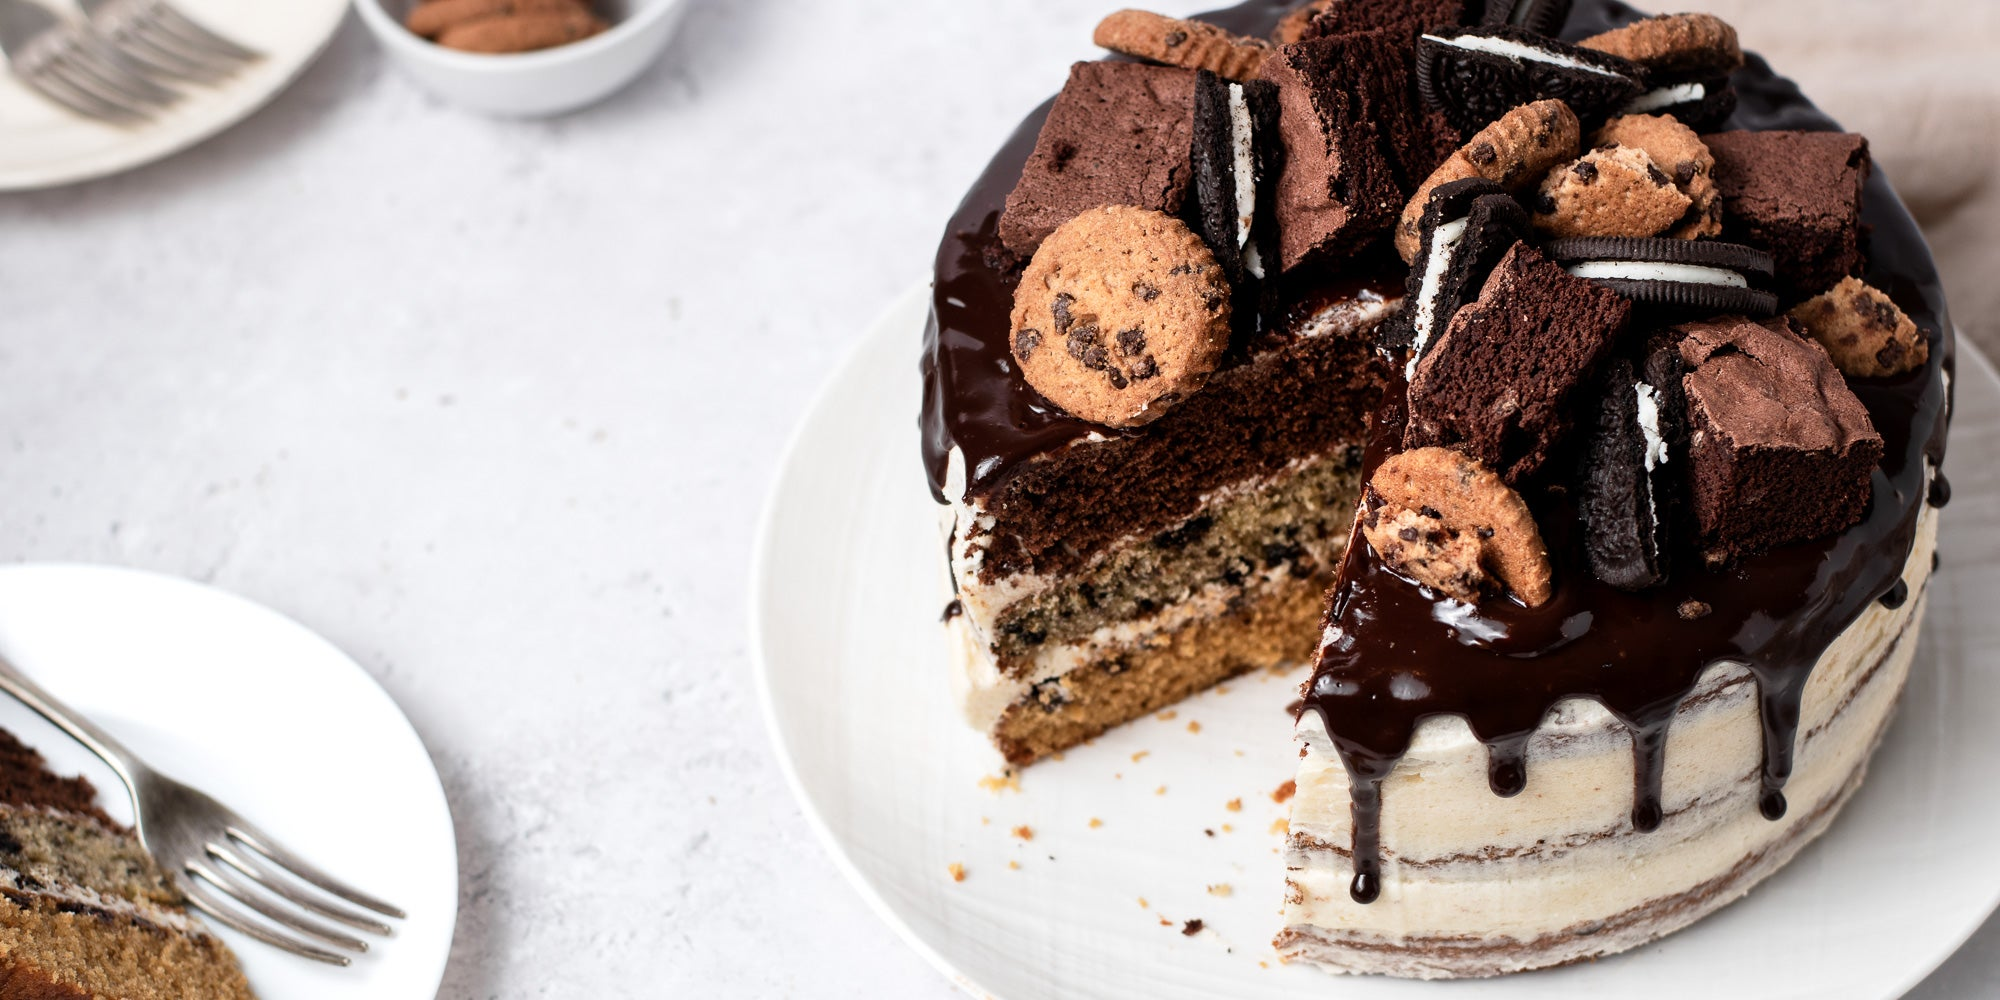 Cookie, Oreo & Brownie Layered Cake with a slice cut out of it, next to a plate with a fork ready to serve